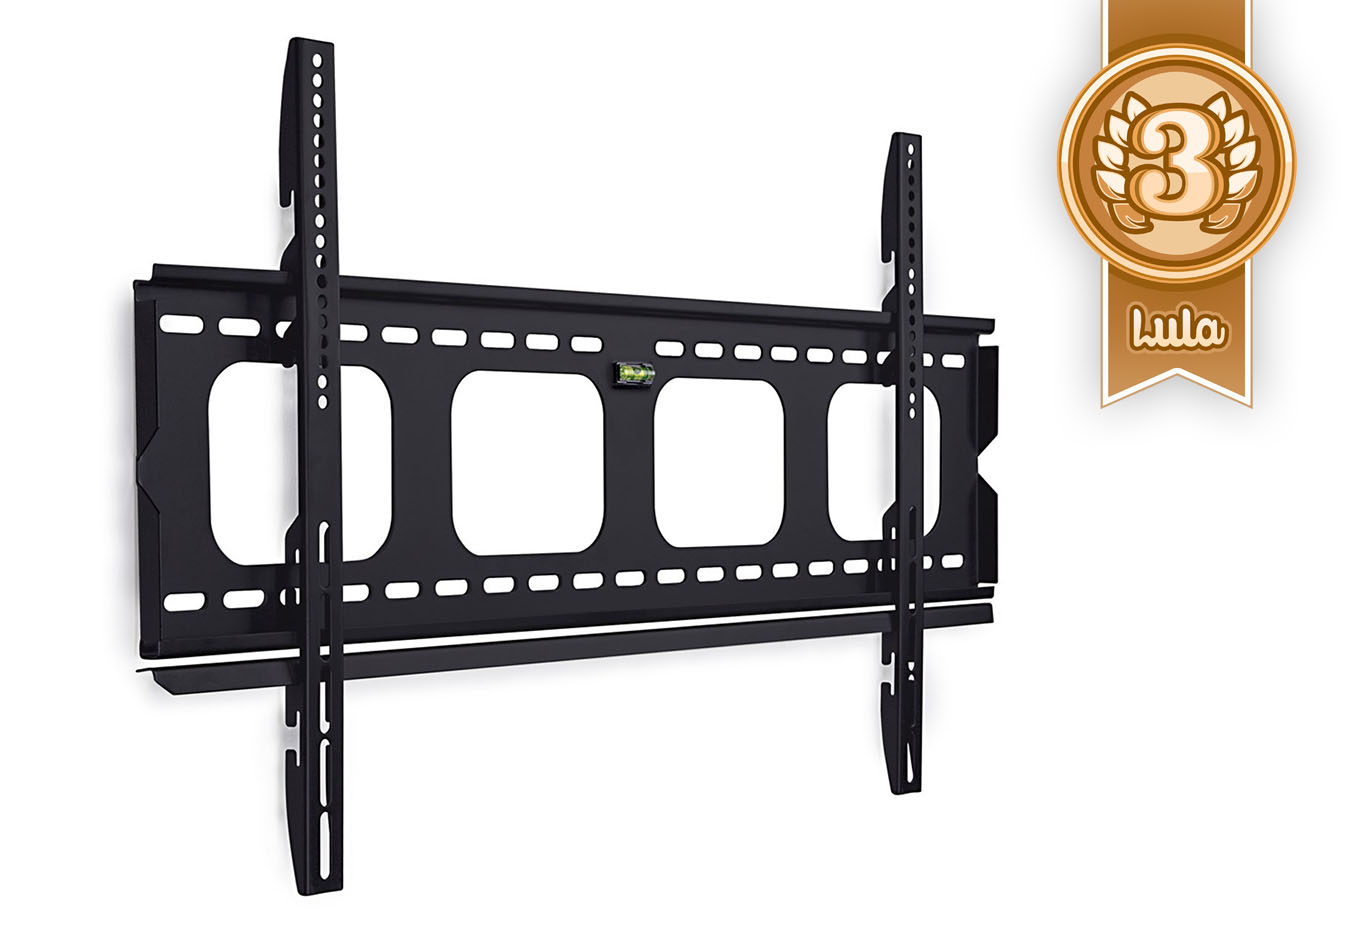 mount_it low profile tv wall mount